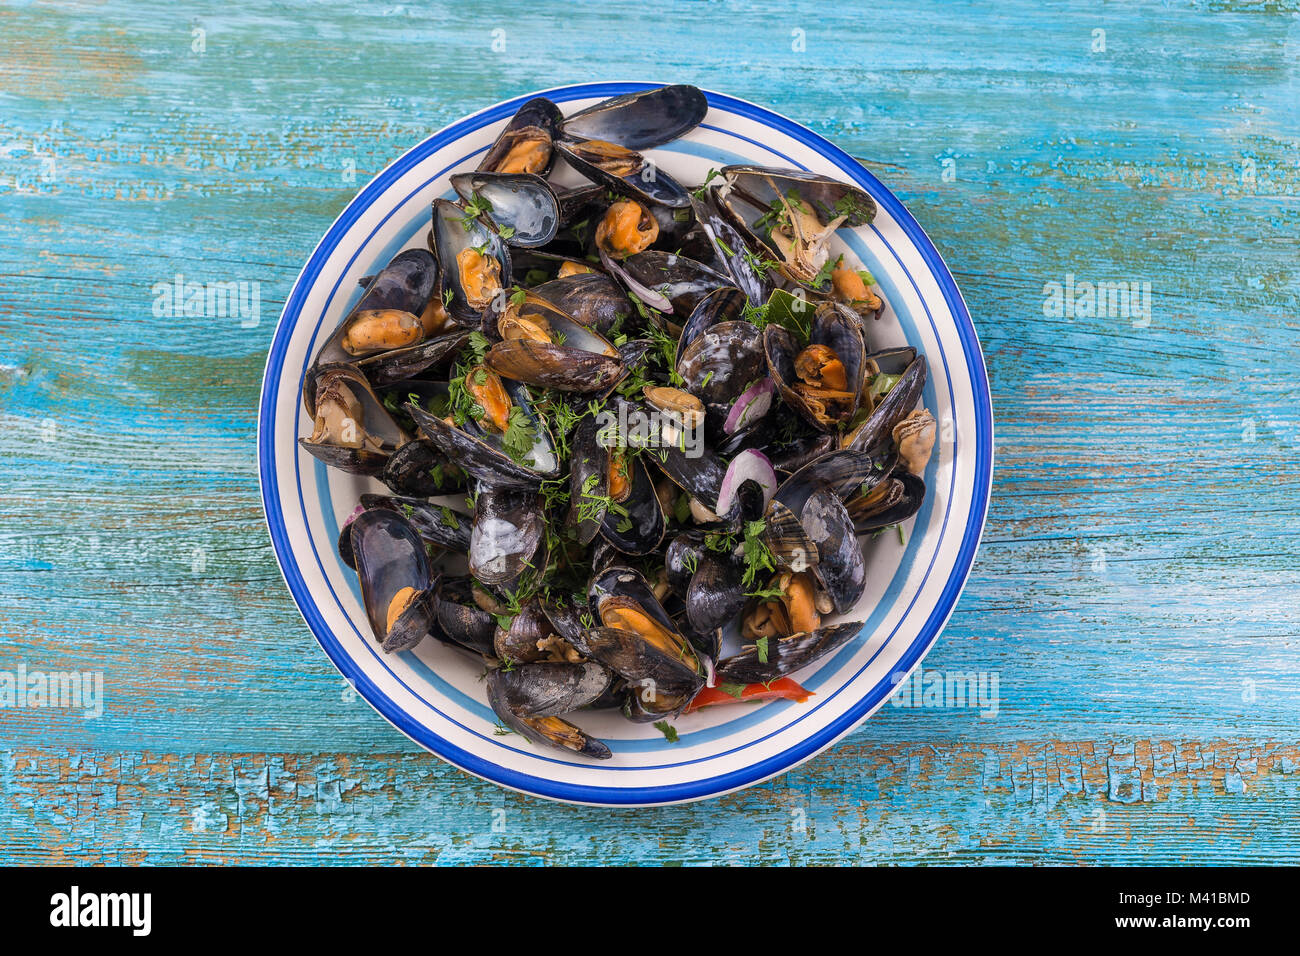 Steamed mussels in white wine with herbs ,Seafood. Served in white plate, up view on blue wooden background - Stock Image